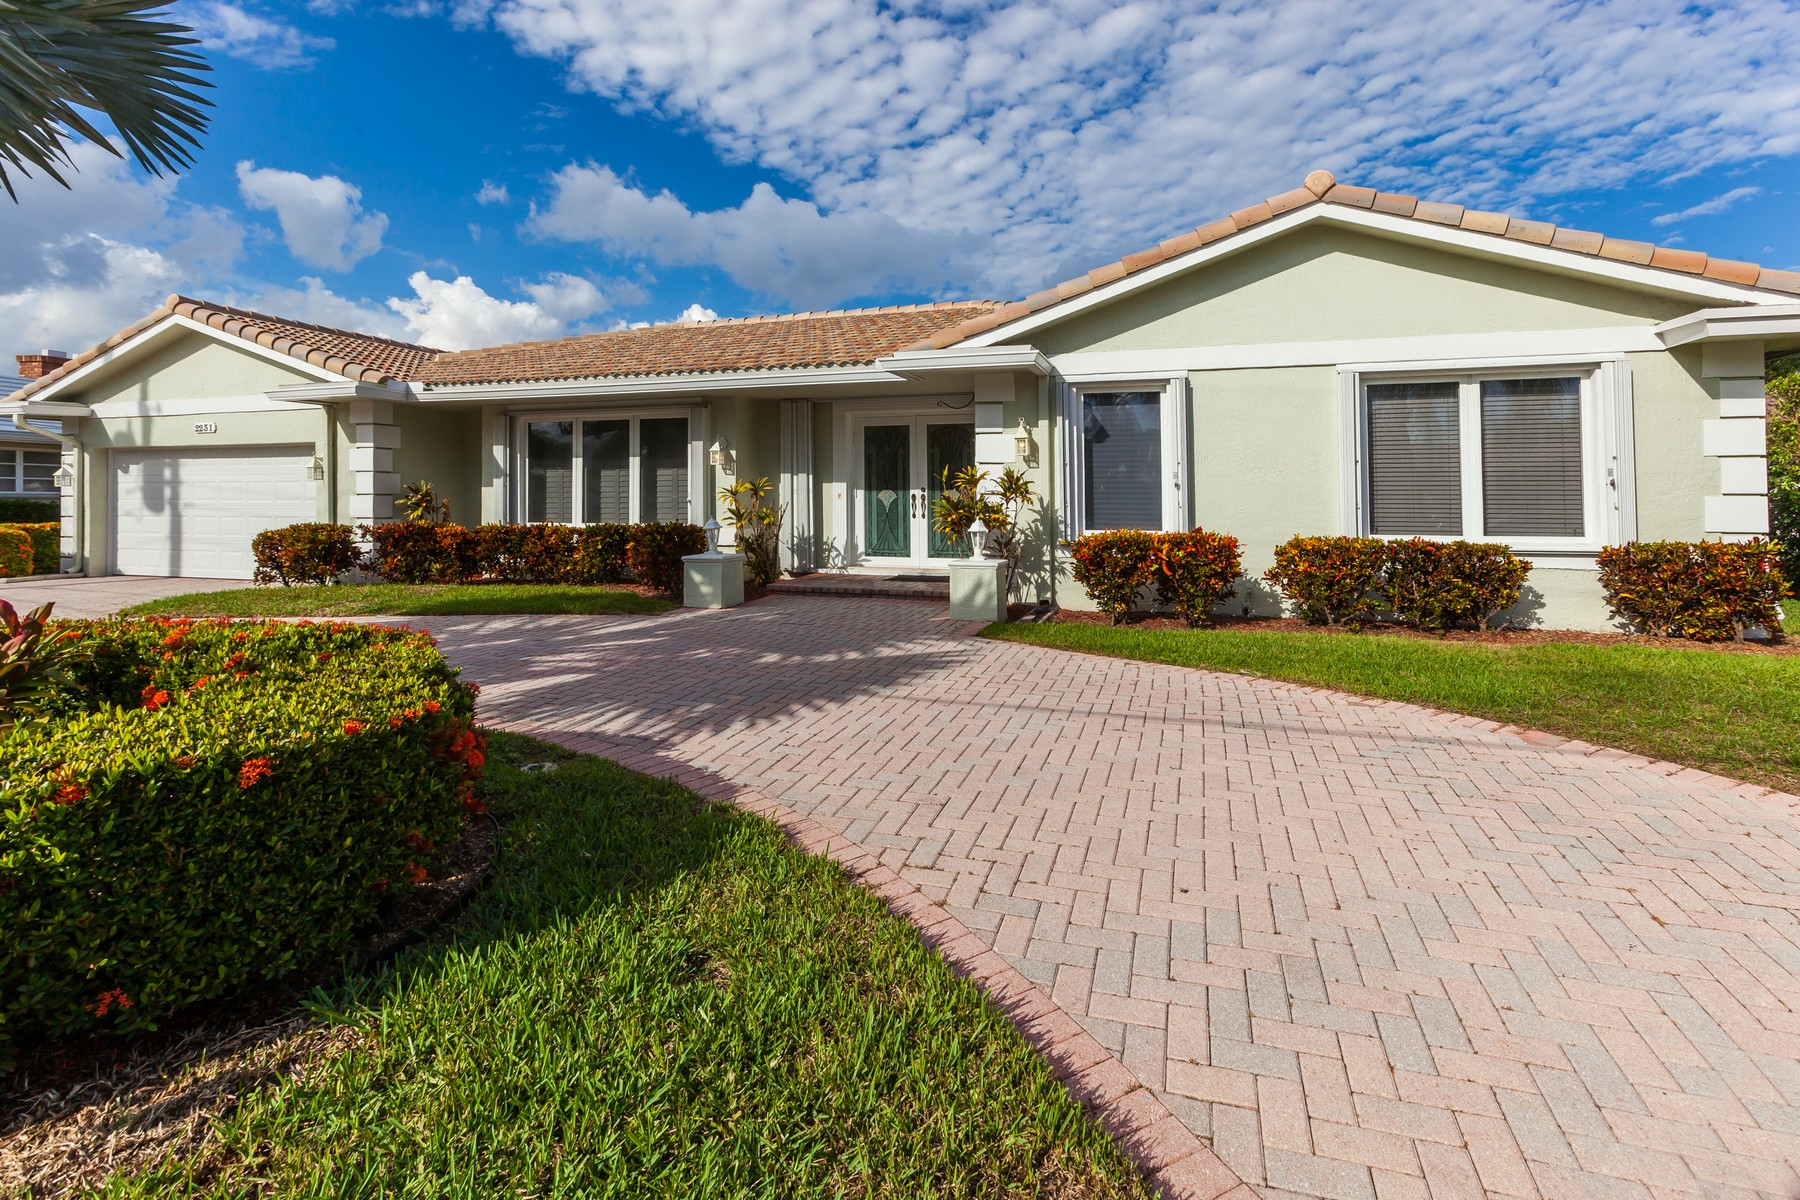 Villa per Vendita alle ore 2231 NE 44 St Lighthouse Point, Florida 33064 Stati Uniti